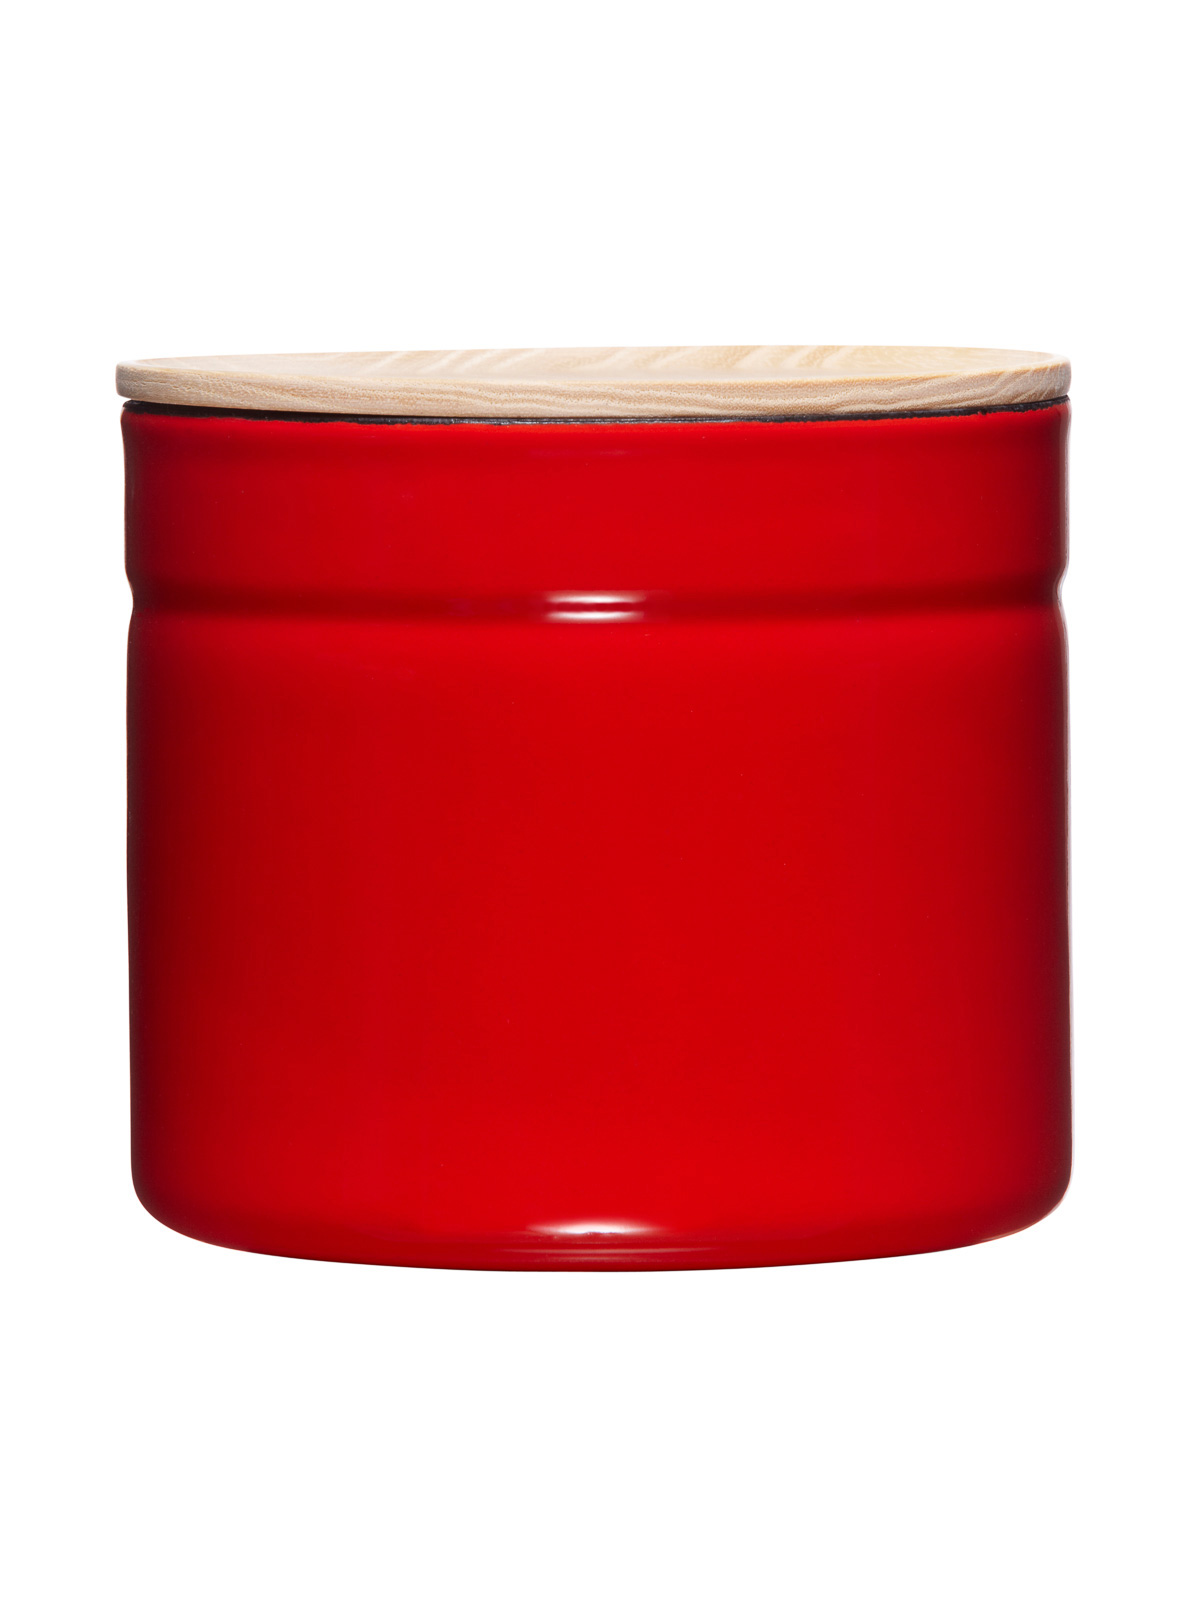 storage container red 1390 ml (2174-213)